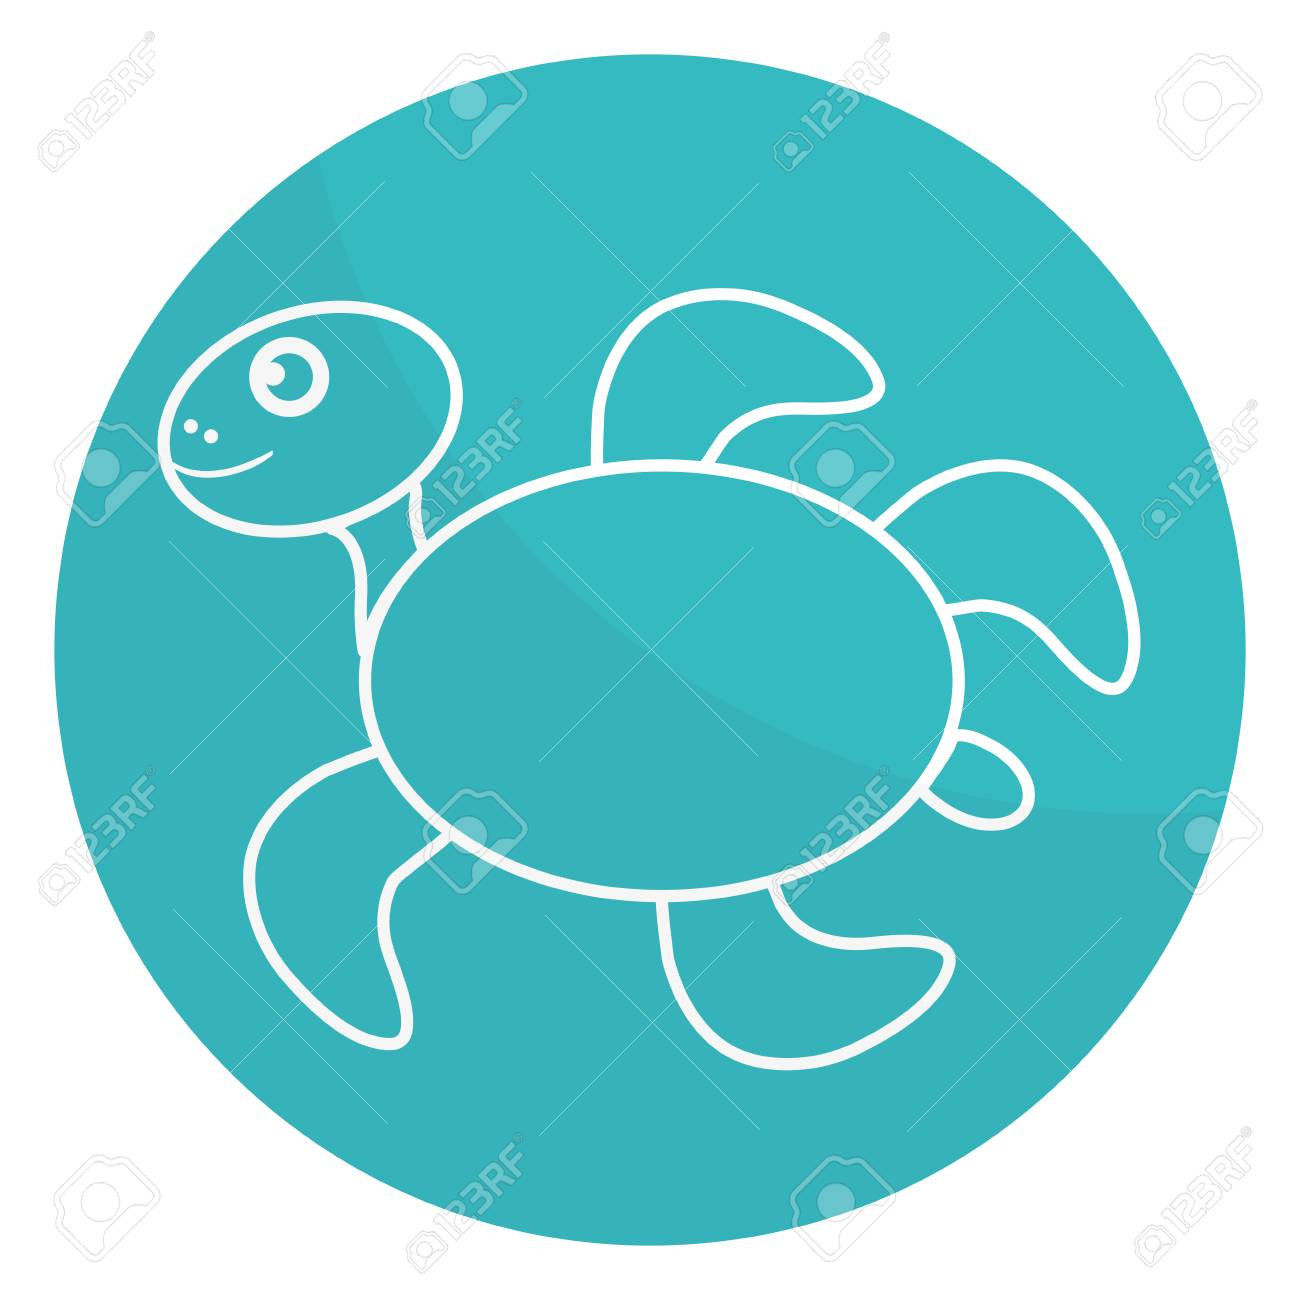 Cute Turtle Character Icon Vector Illustration Design Royalty Free